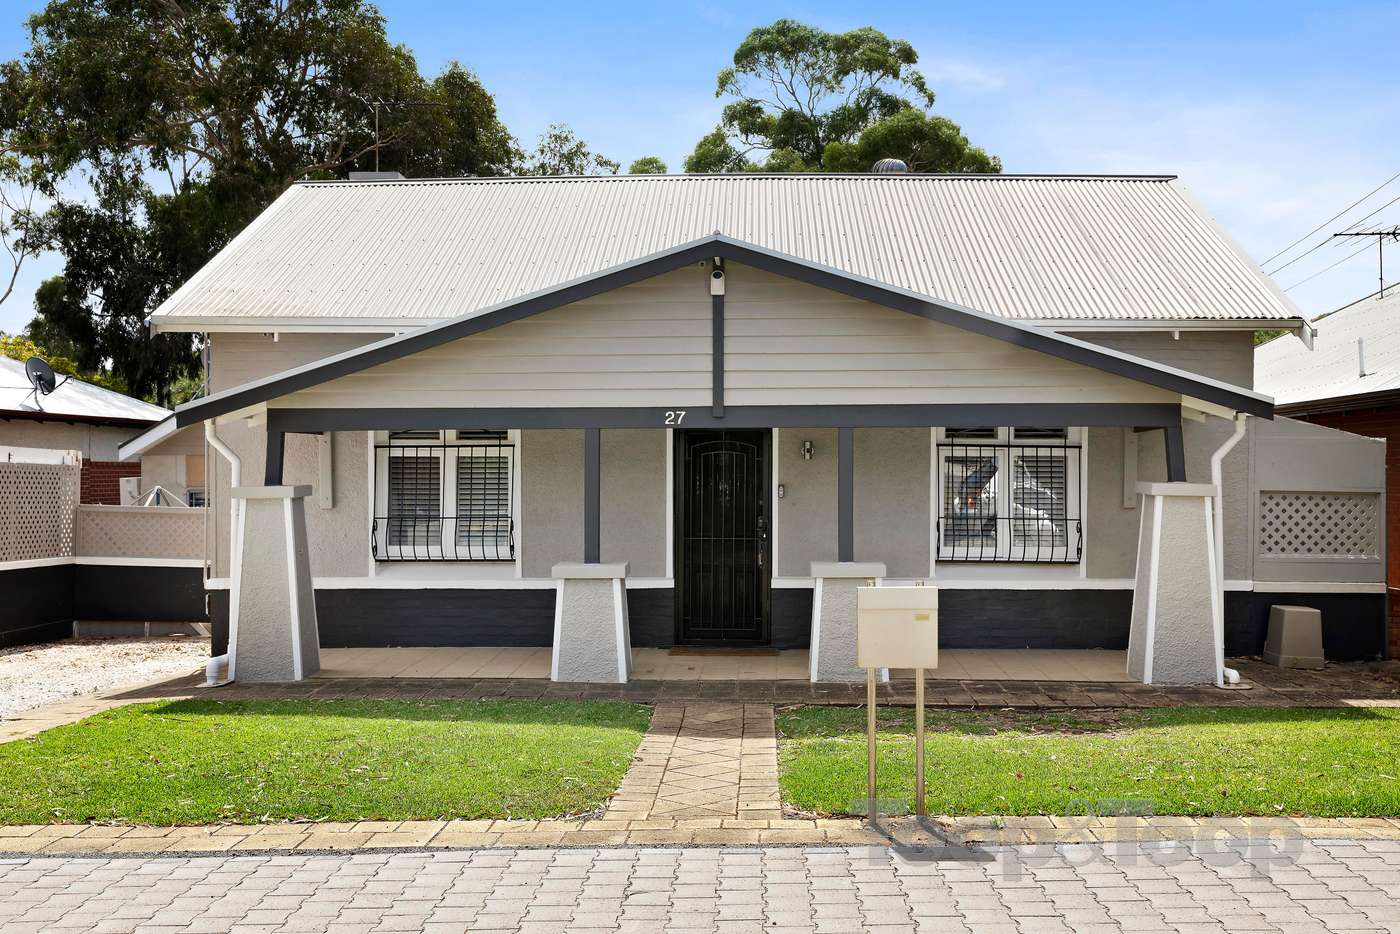 Main view of Homely house listing, 27 Sturt Avenue, Colonel Light Gardens SA 5041